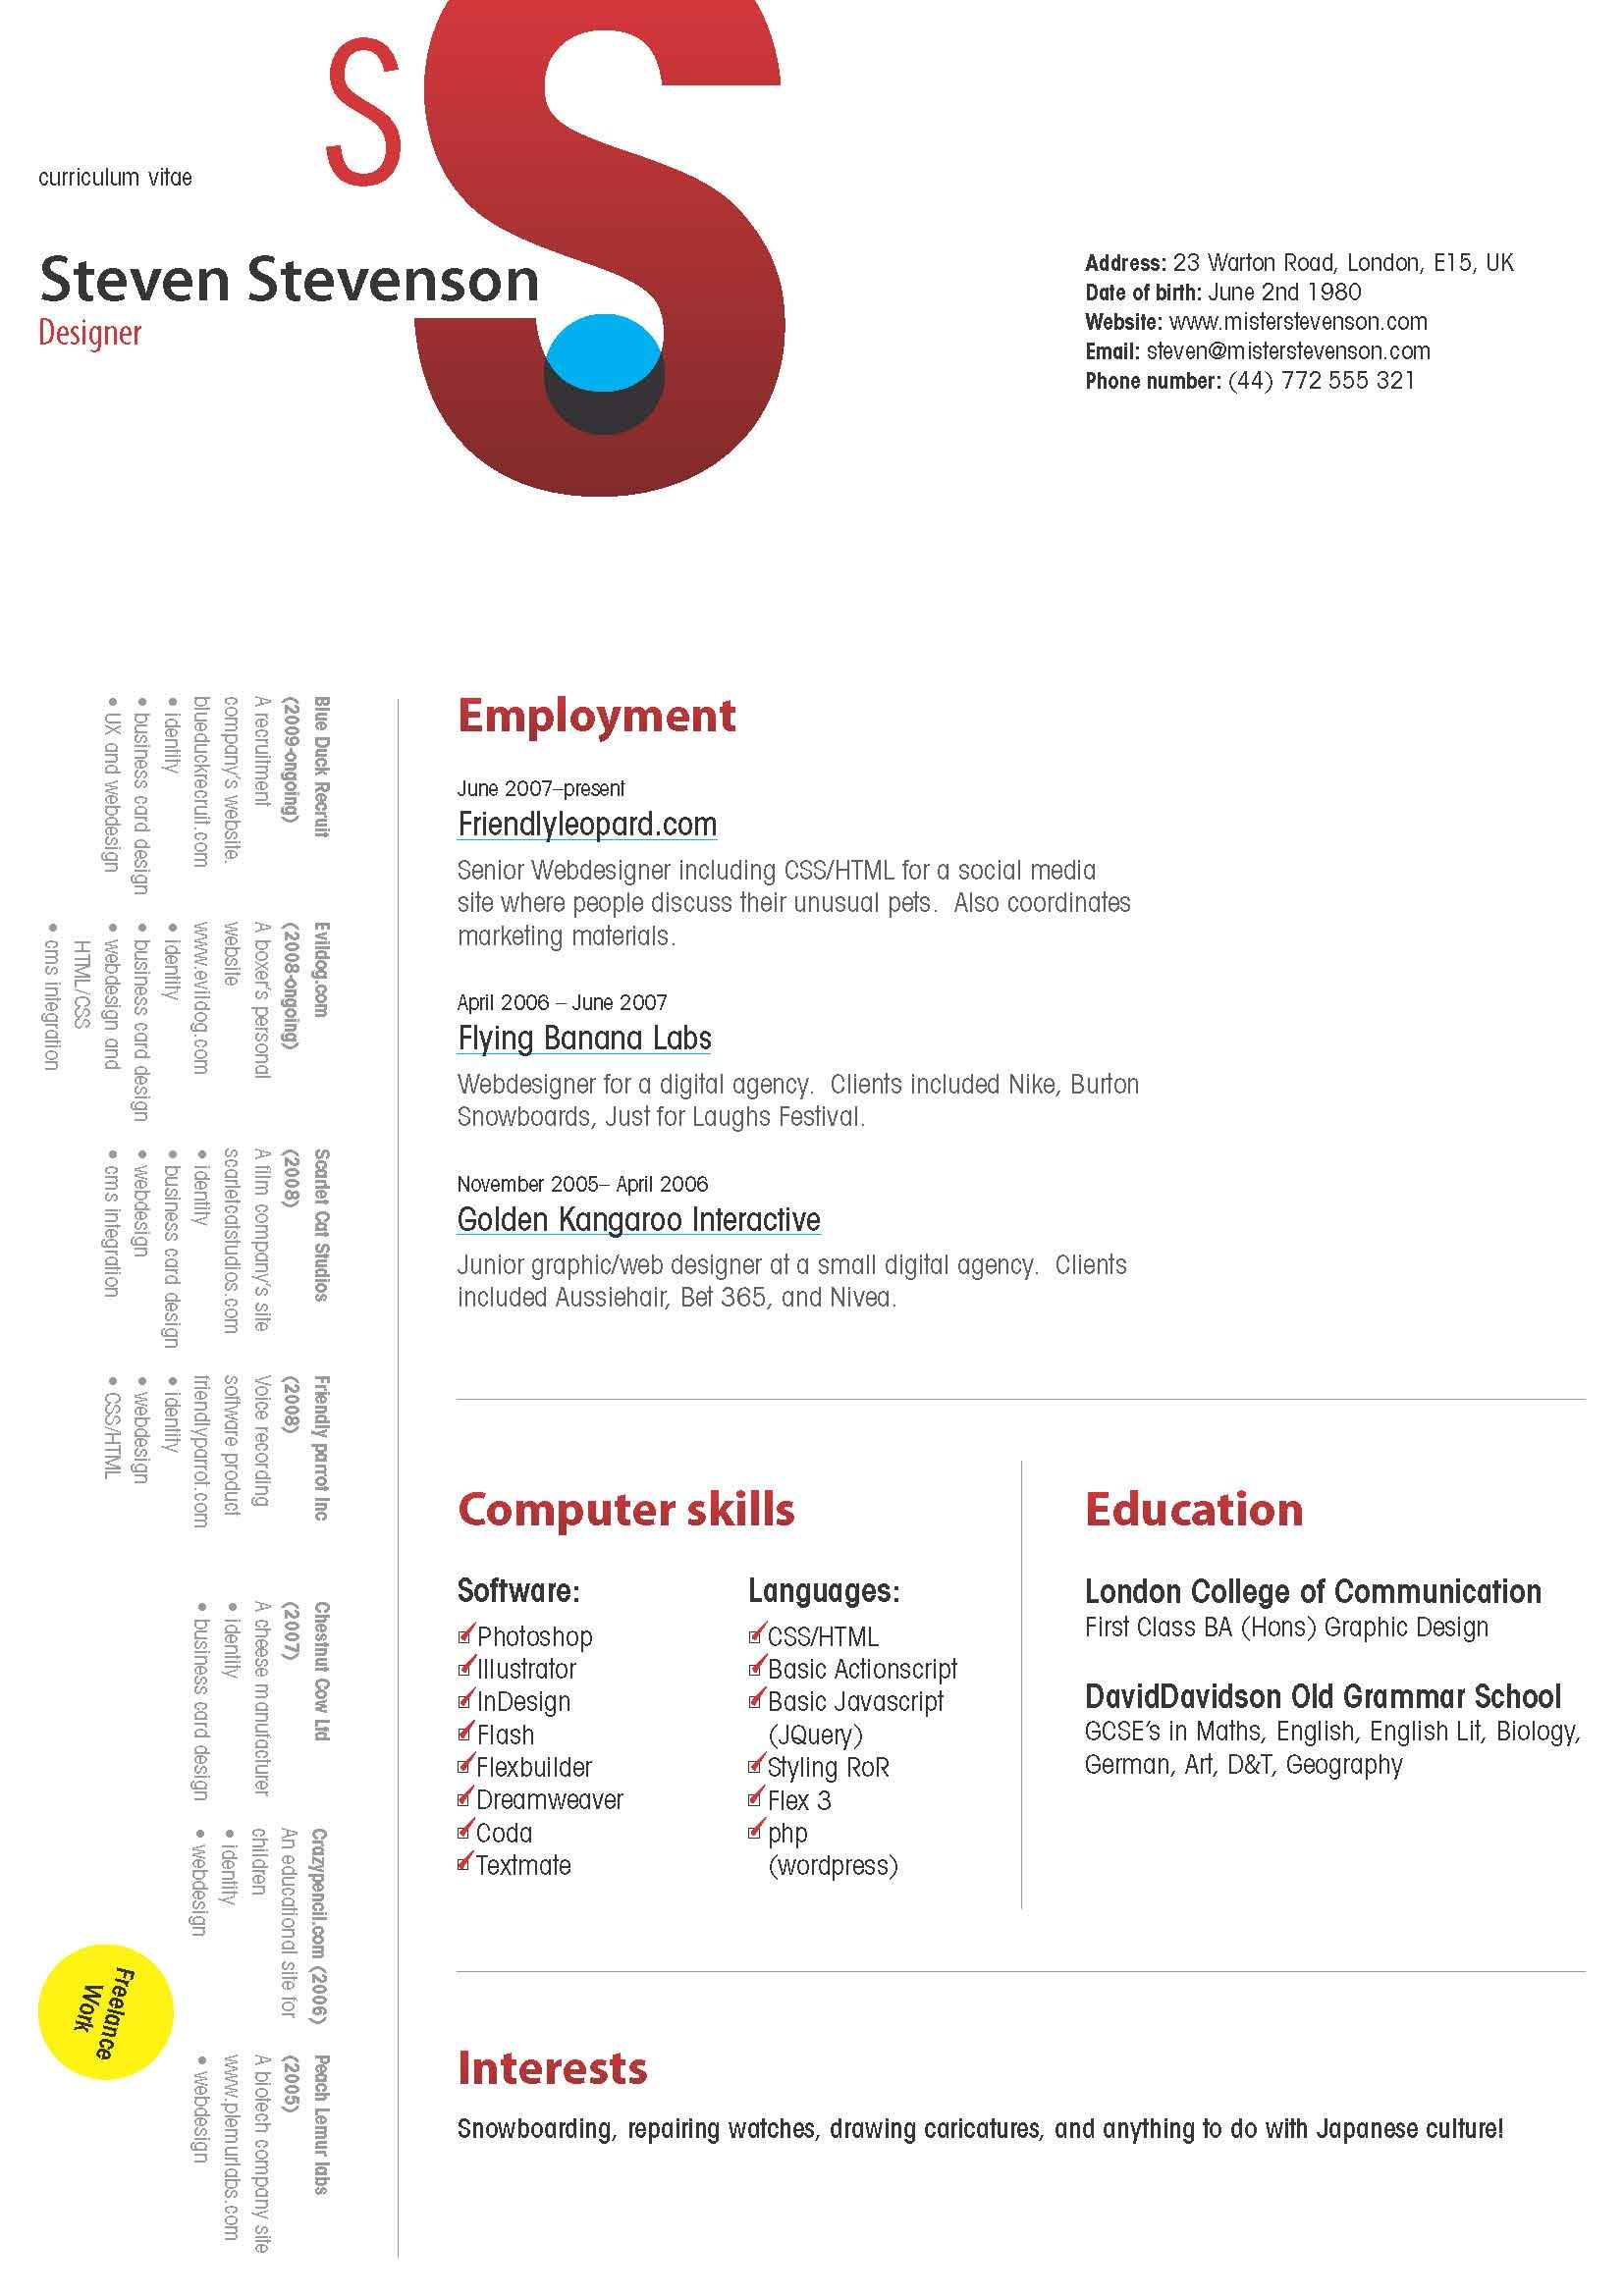 best images about resumes infographic resume 17 best images about resumes infographic resume creative resume and cv design